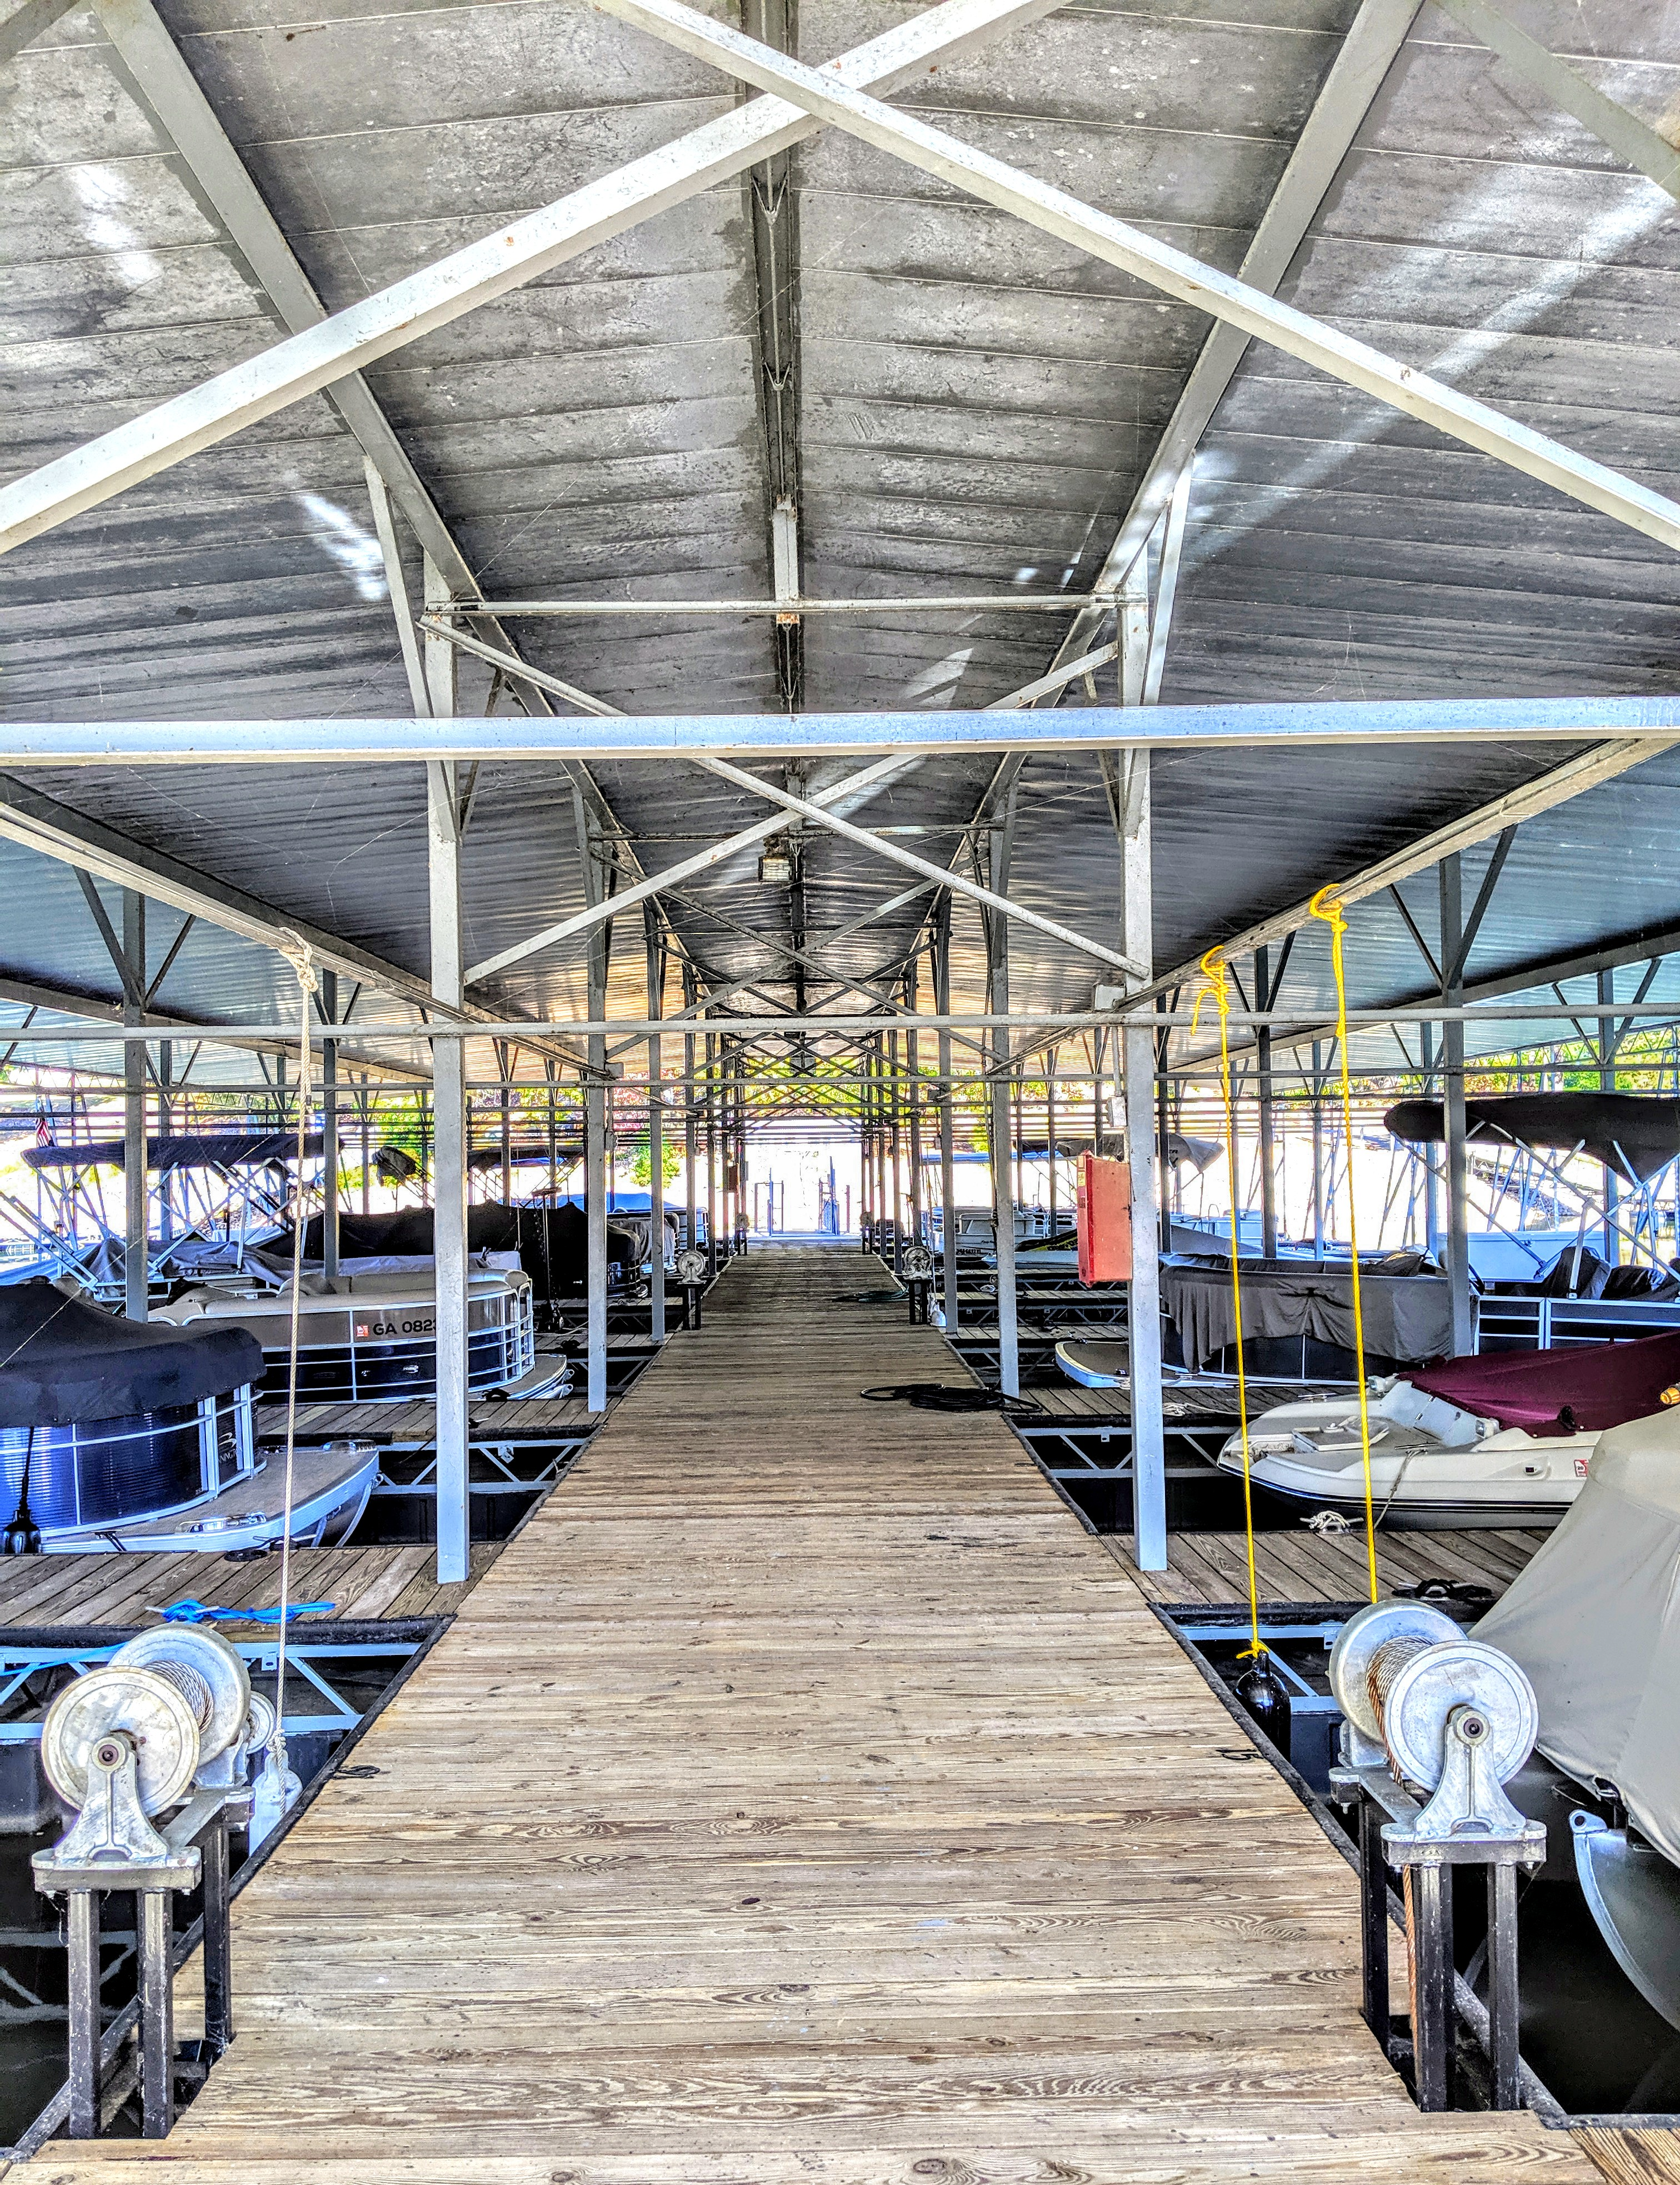 Dry Boat Trailer Storage Buford Boat Dock Gainesville